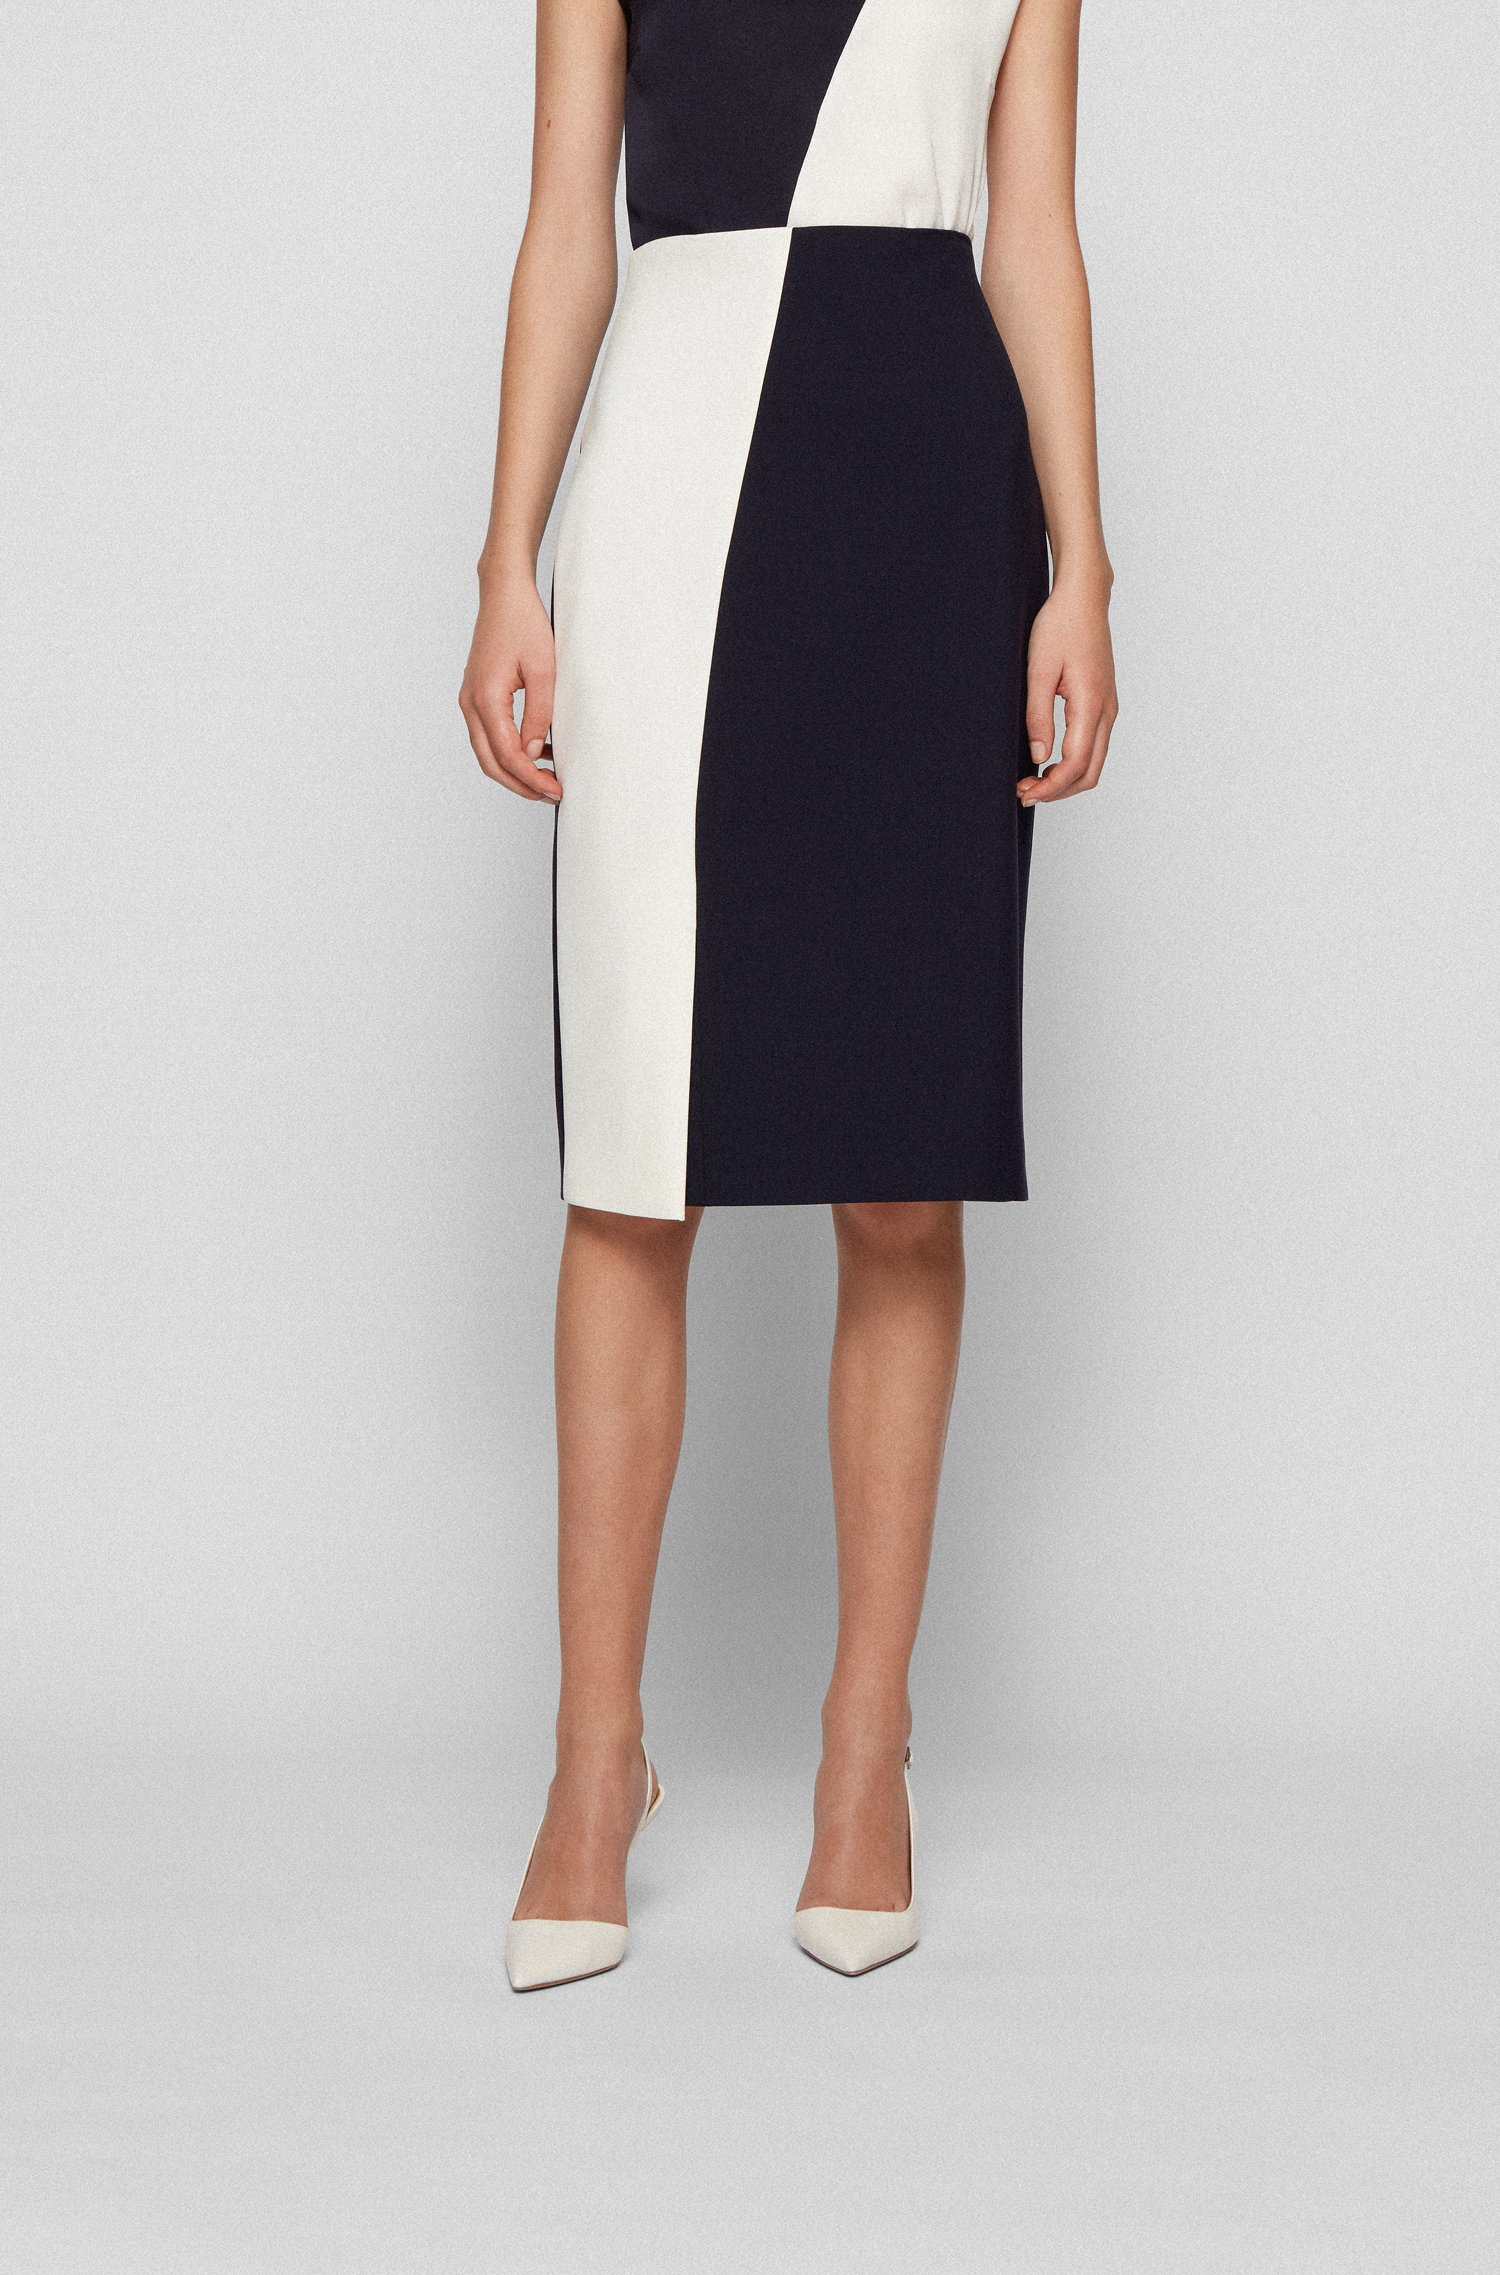 Pencil skirt in stretch fabric with colour-block front, Black